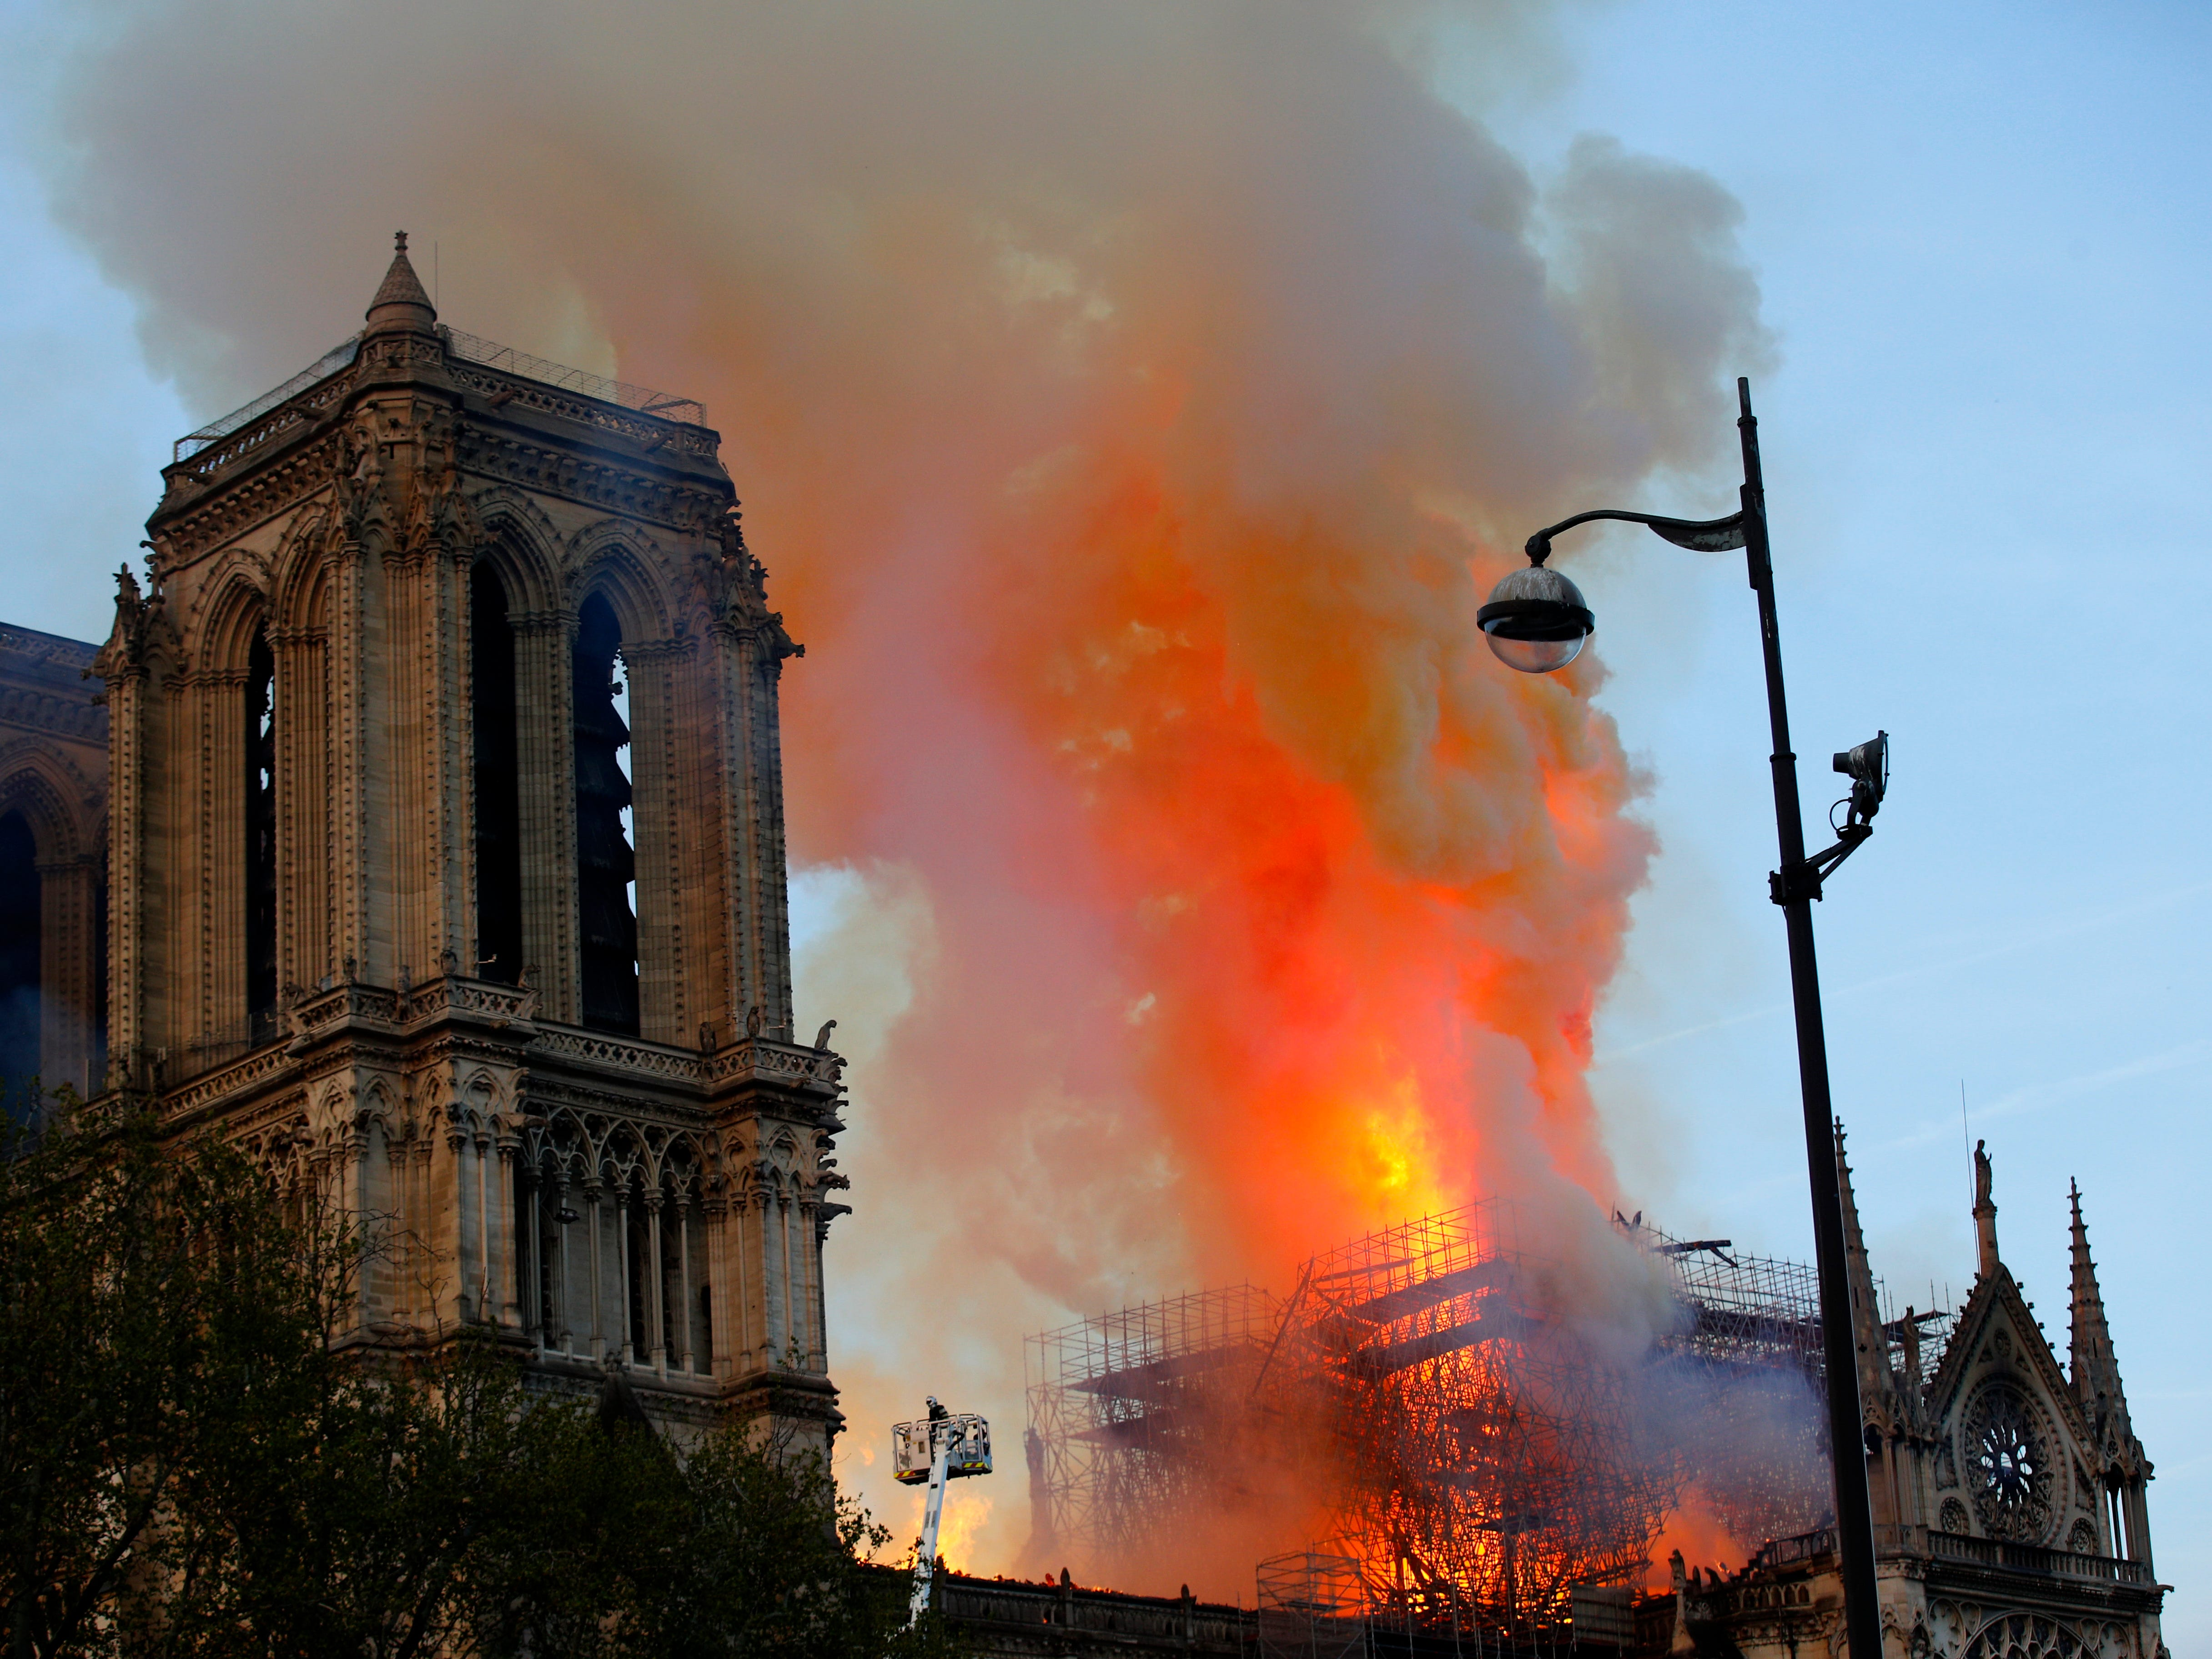 Firefighters try to contain the blaze as Notre Dame cathedral burns in Paris.